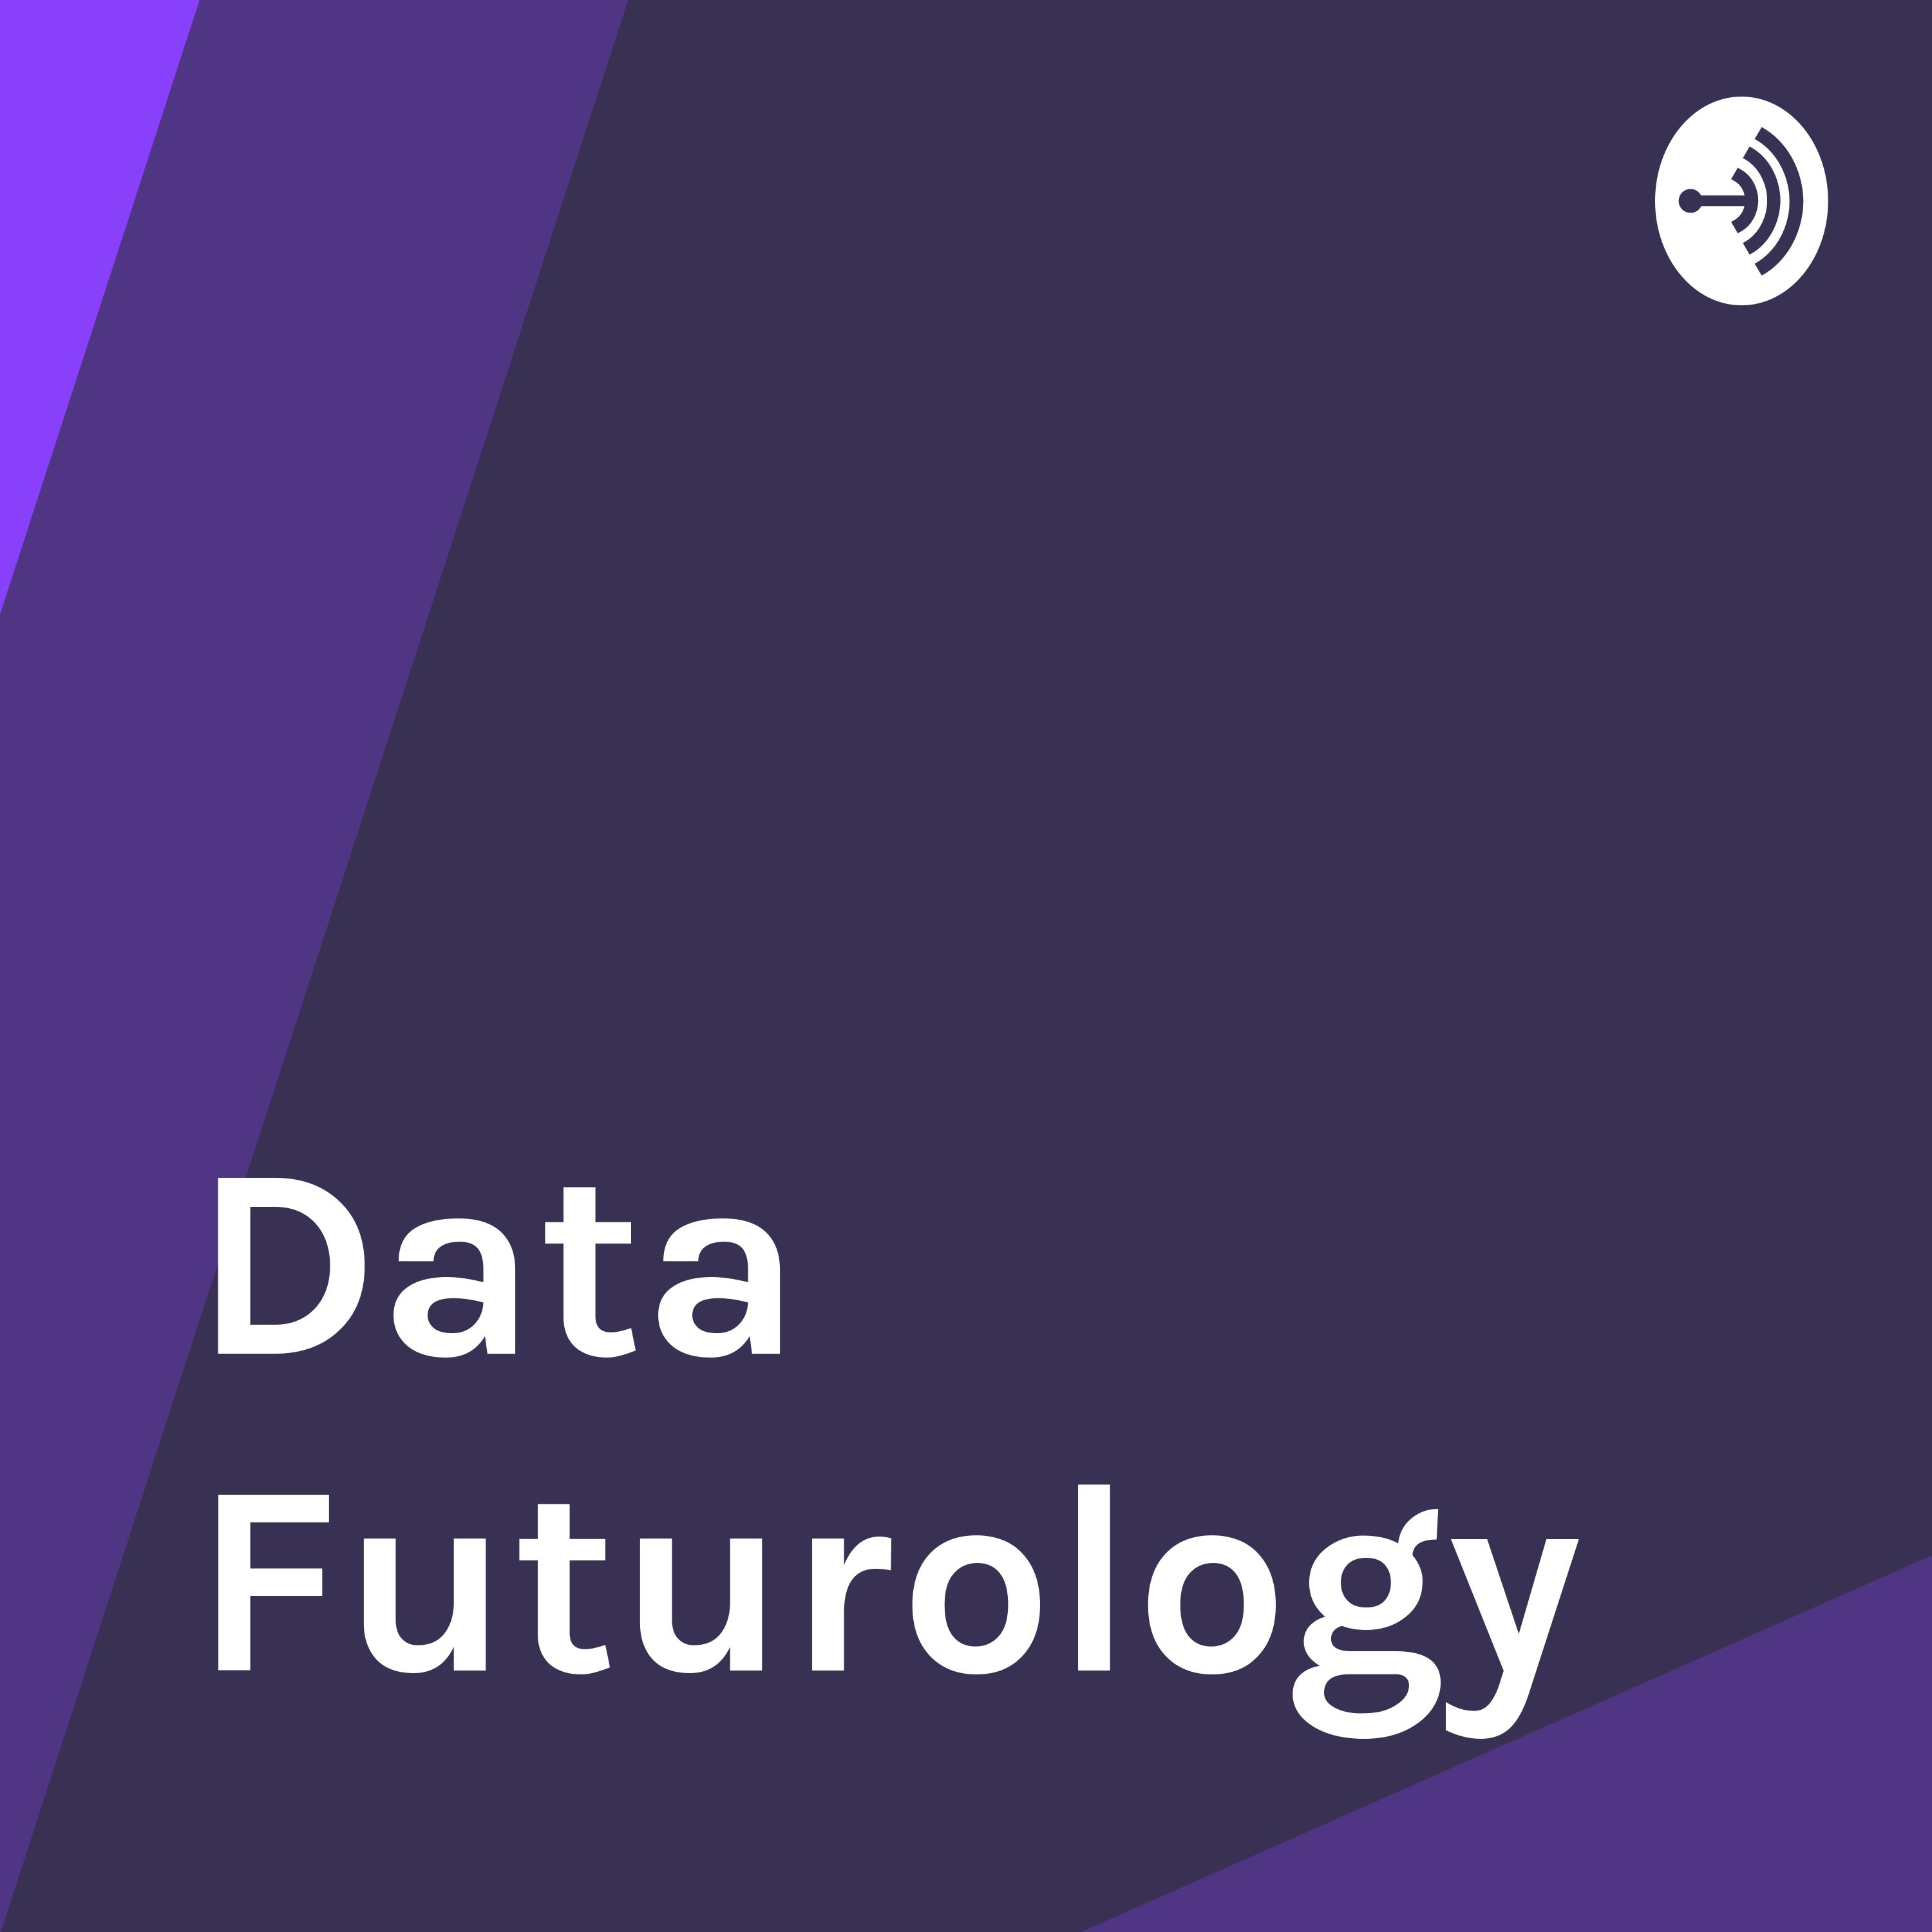 Data Futurology